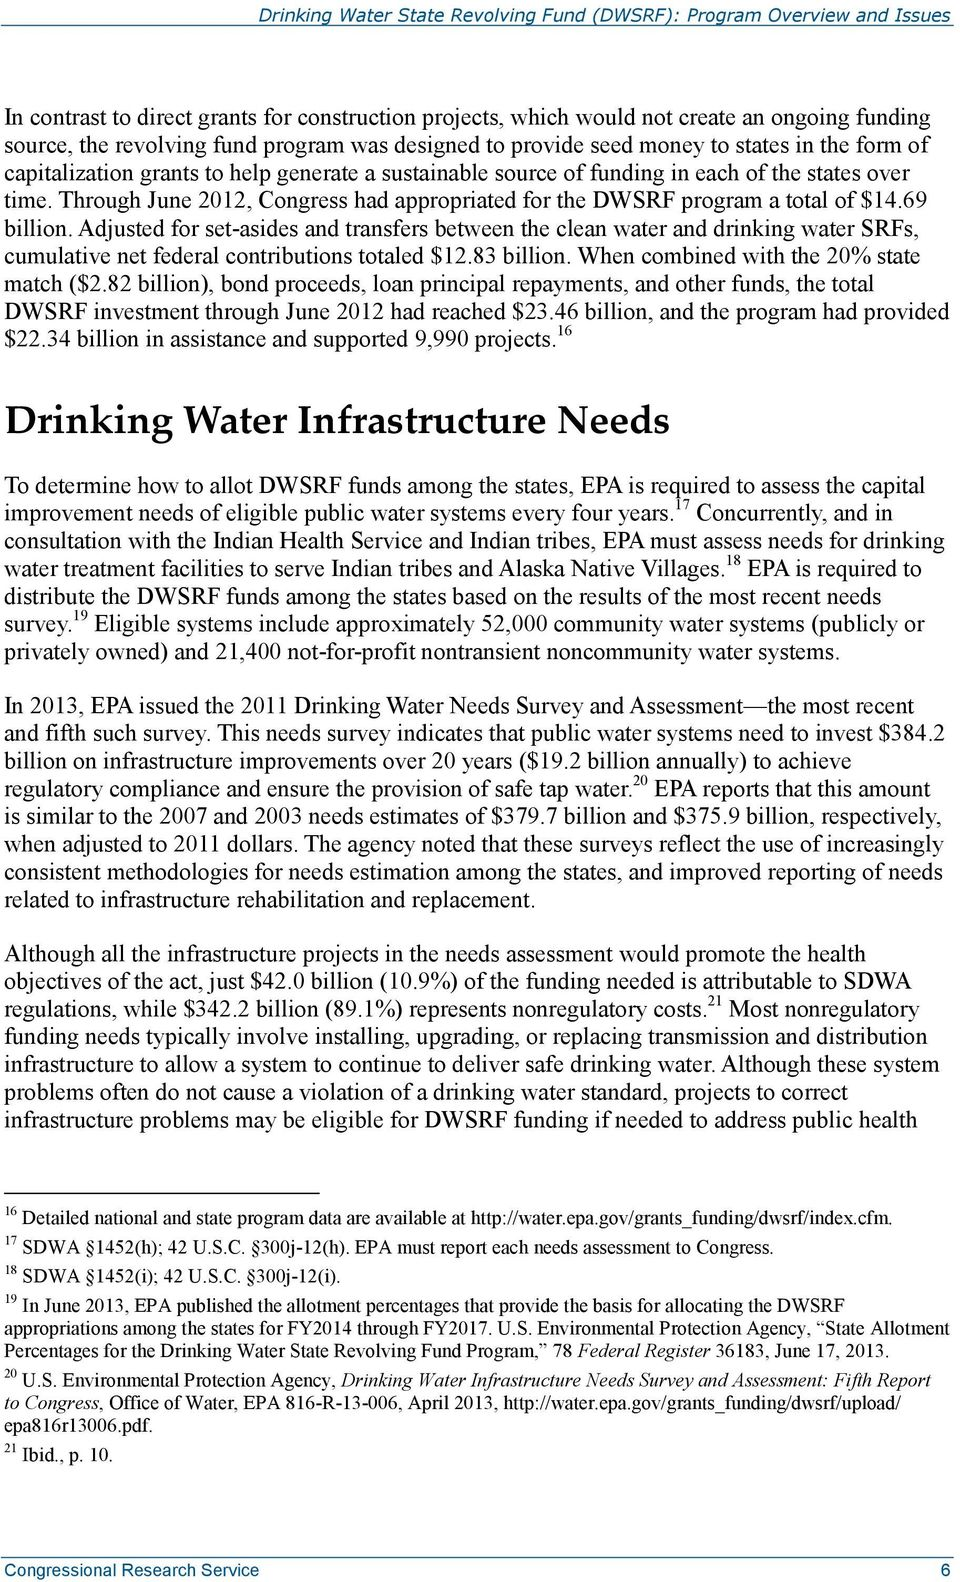 Adjusted for set-asides and transfers between the clean water and drinking water SRFs, cumulative net federal contributions totaled $12.83 billion. When combined with the 20% state match ($2.